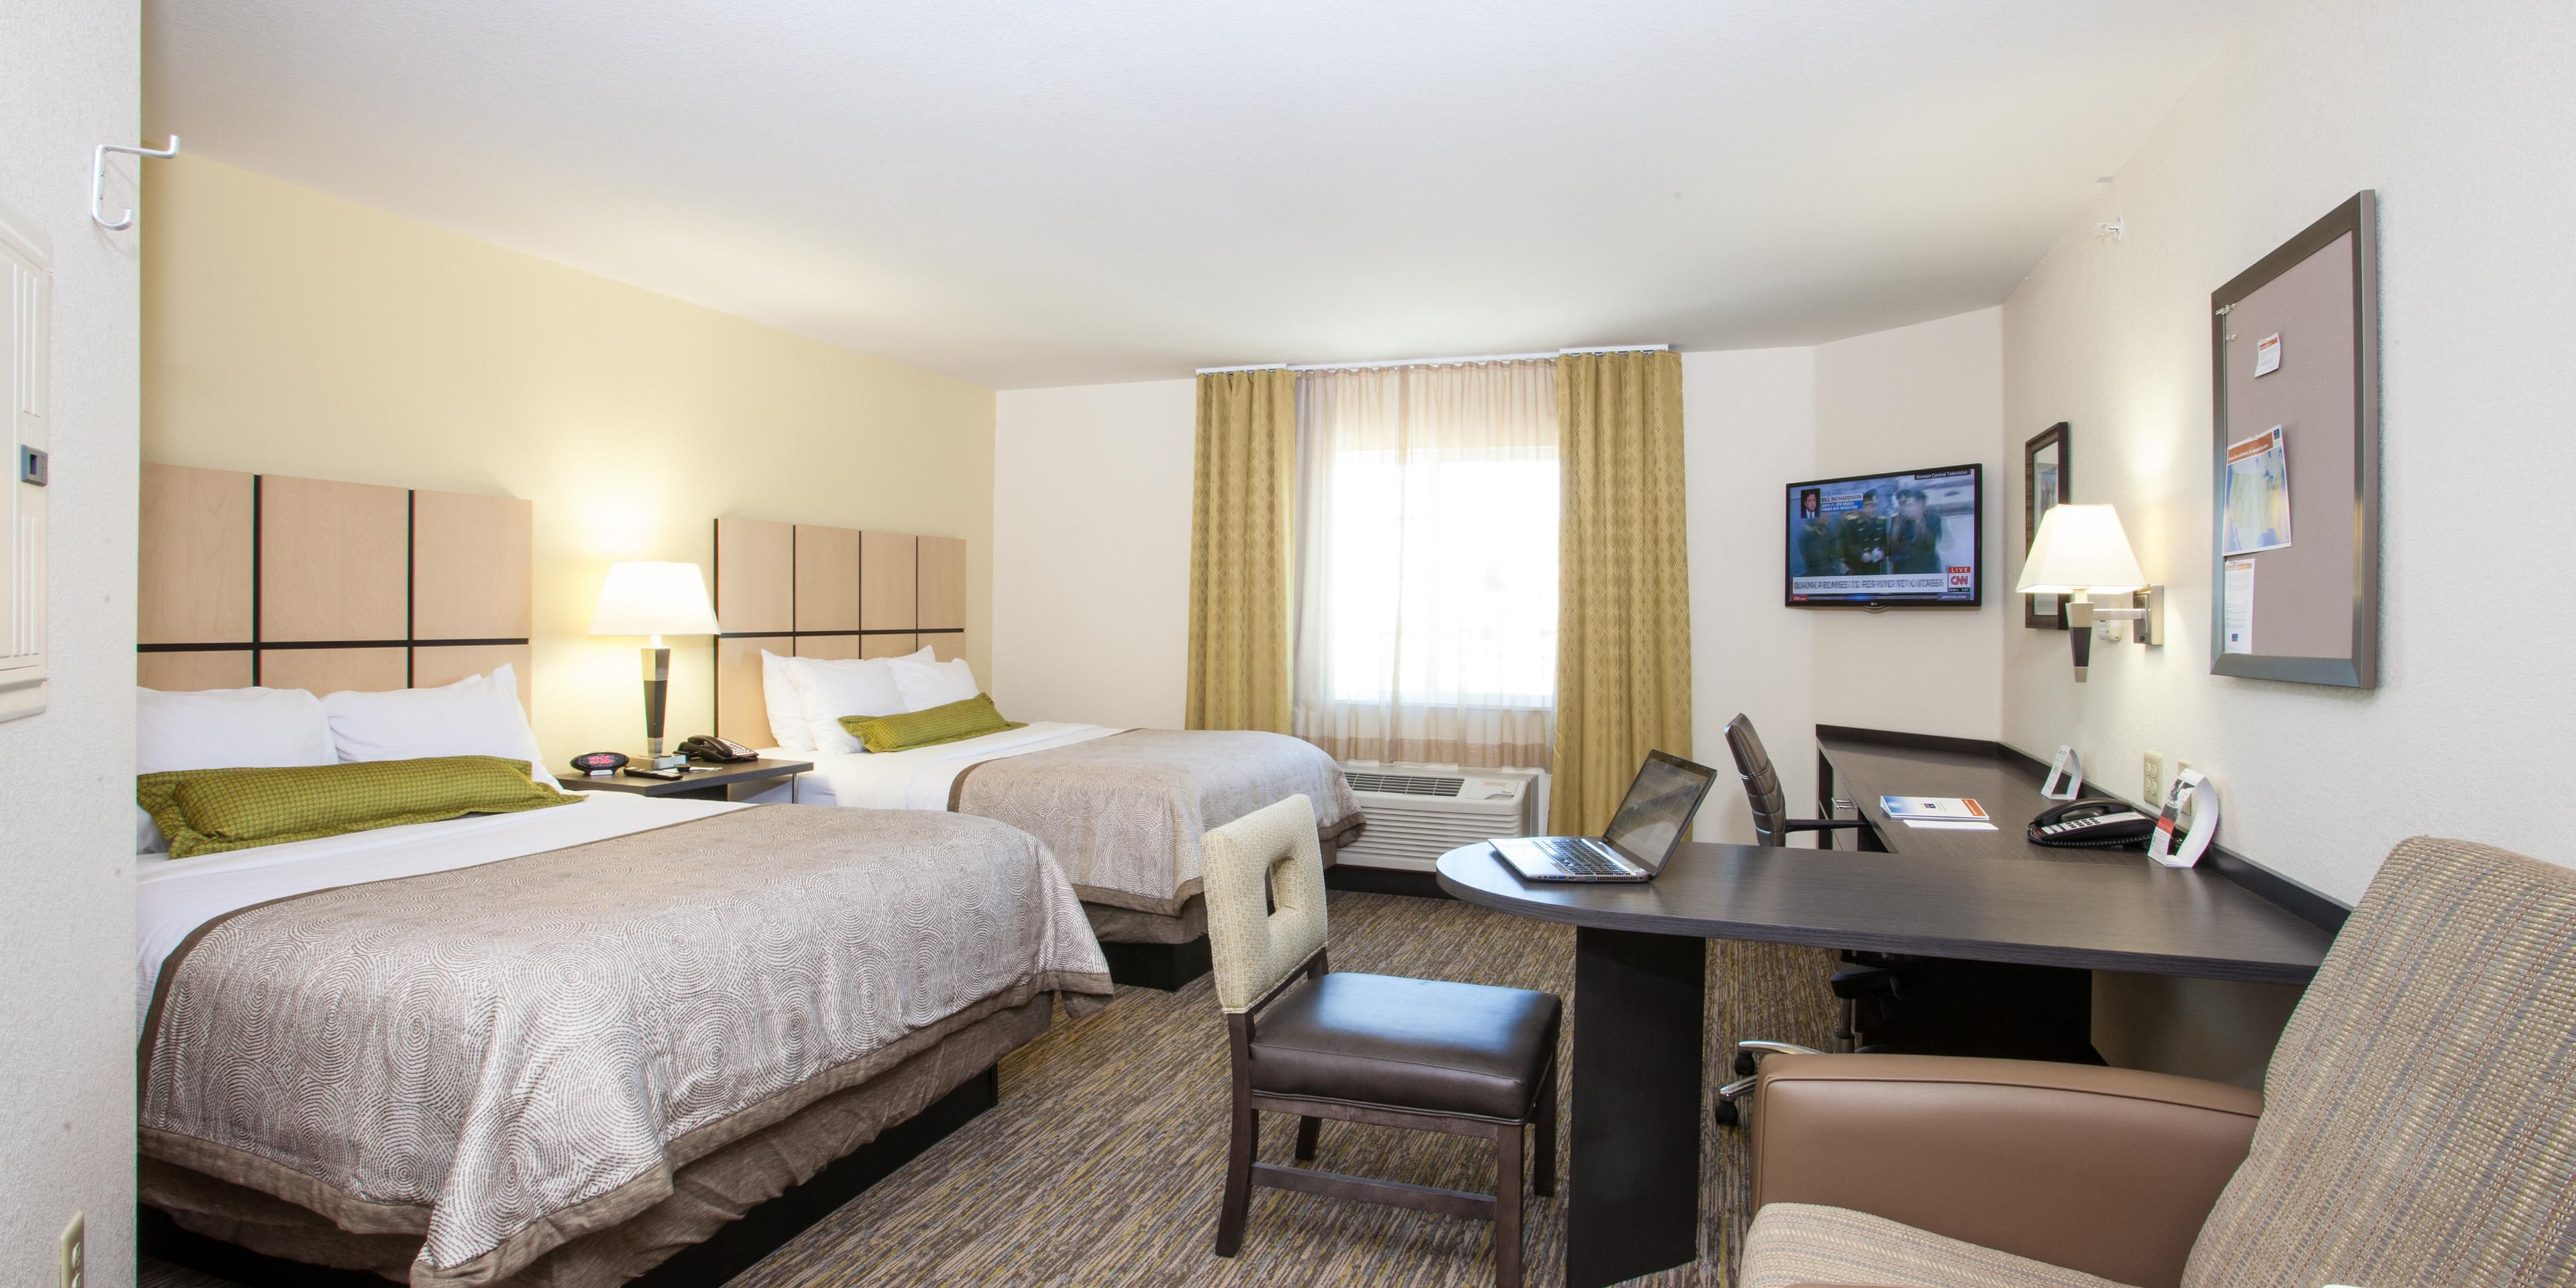 Candlewood Suites New Braunfels   Room Pictures U0026 Amenities